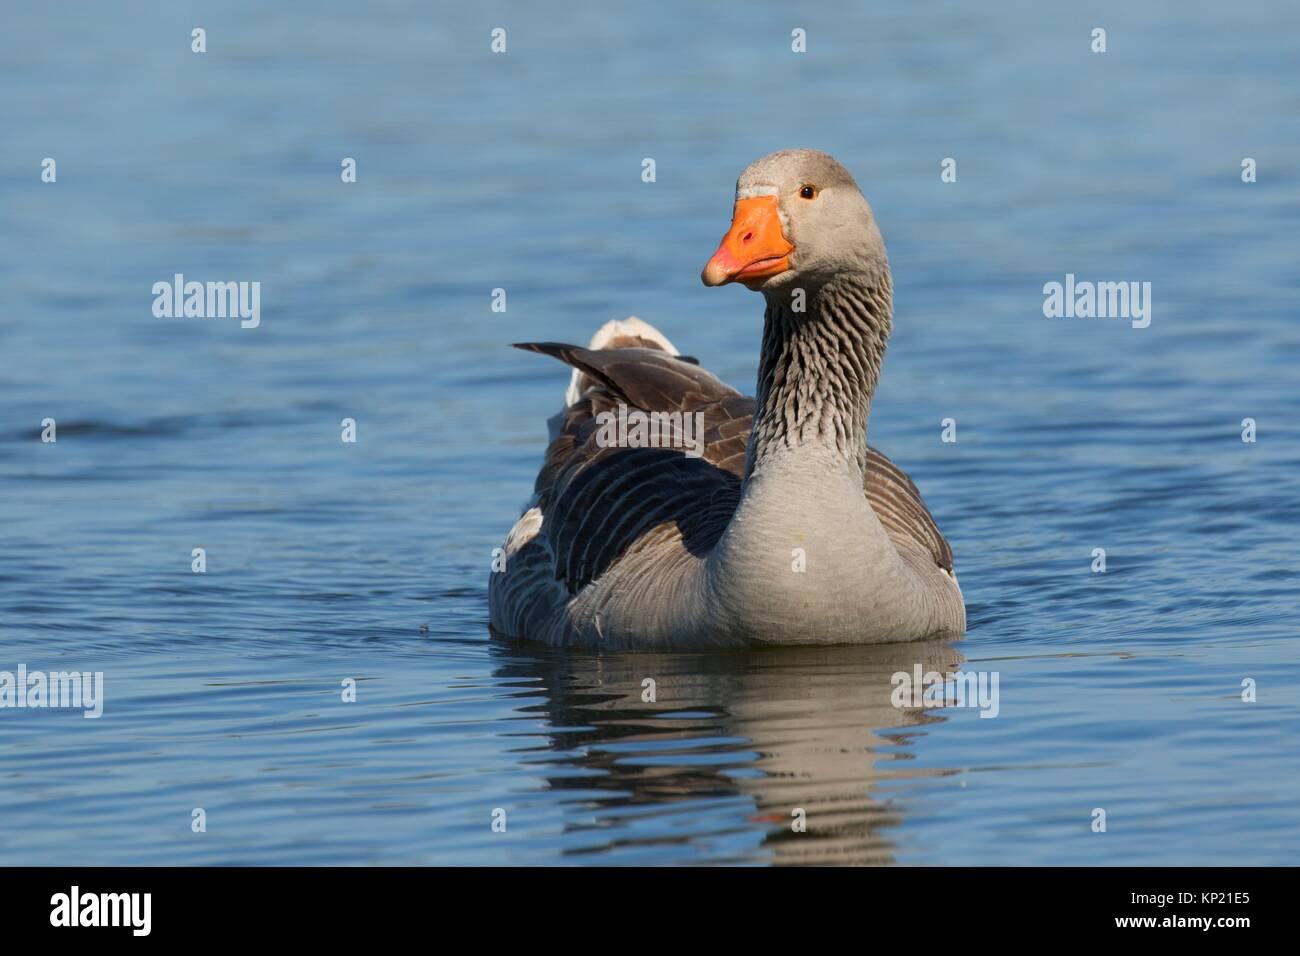 Domestic duck, Junction City Pond, Oregon. - Stock Image